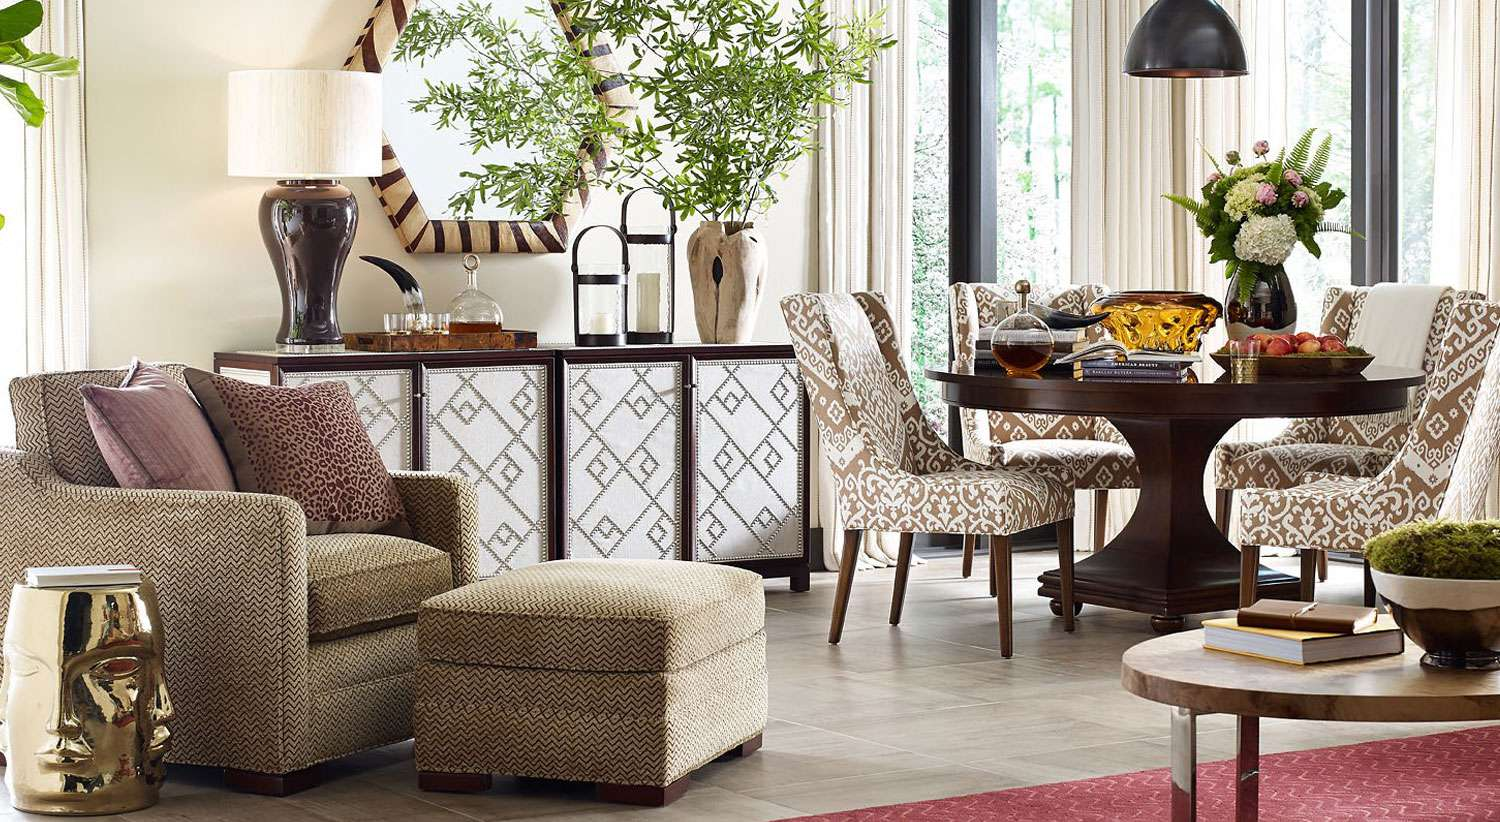 Creative barclay butera with unique pattern interior for living room combined with barclay butera furniture ideas